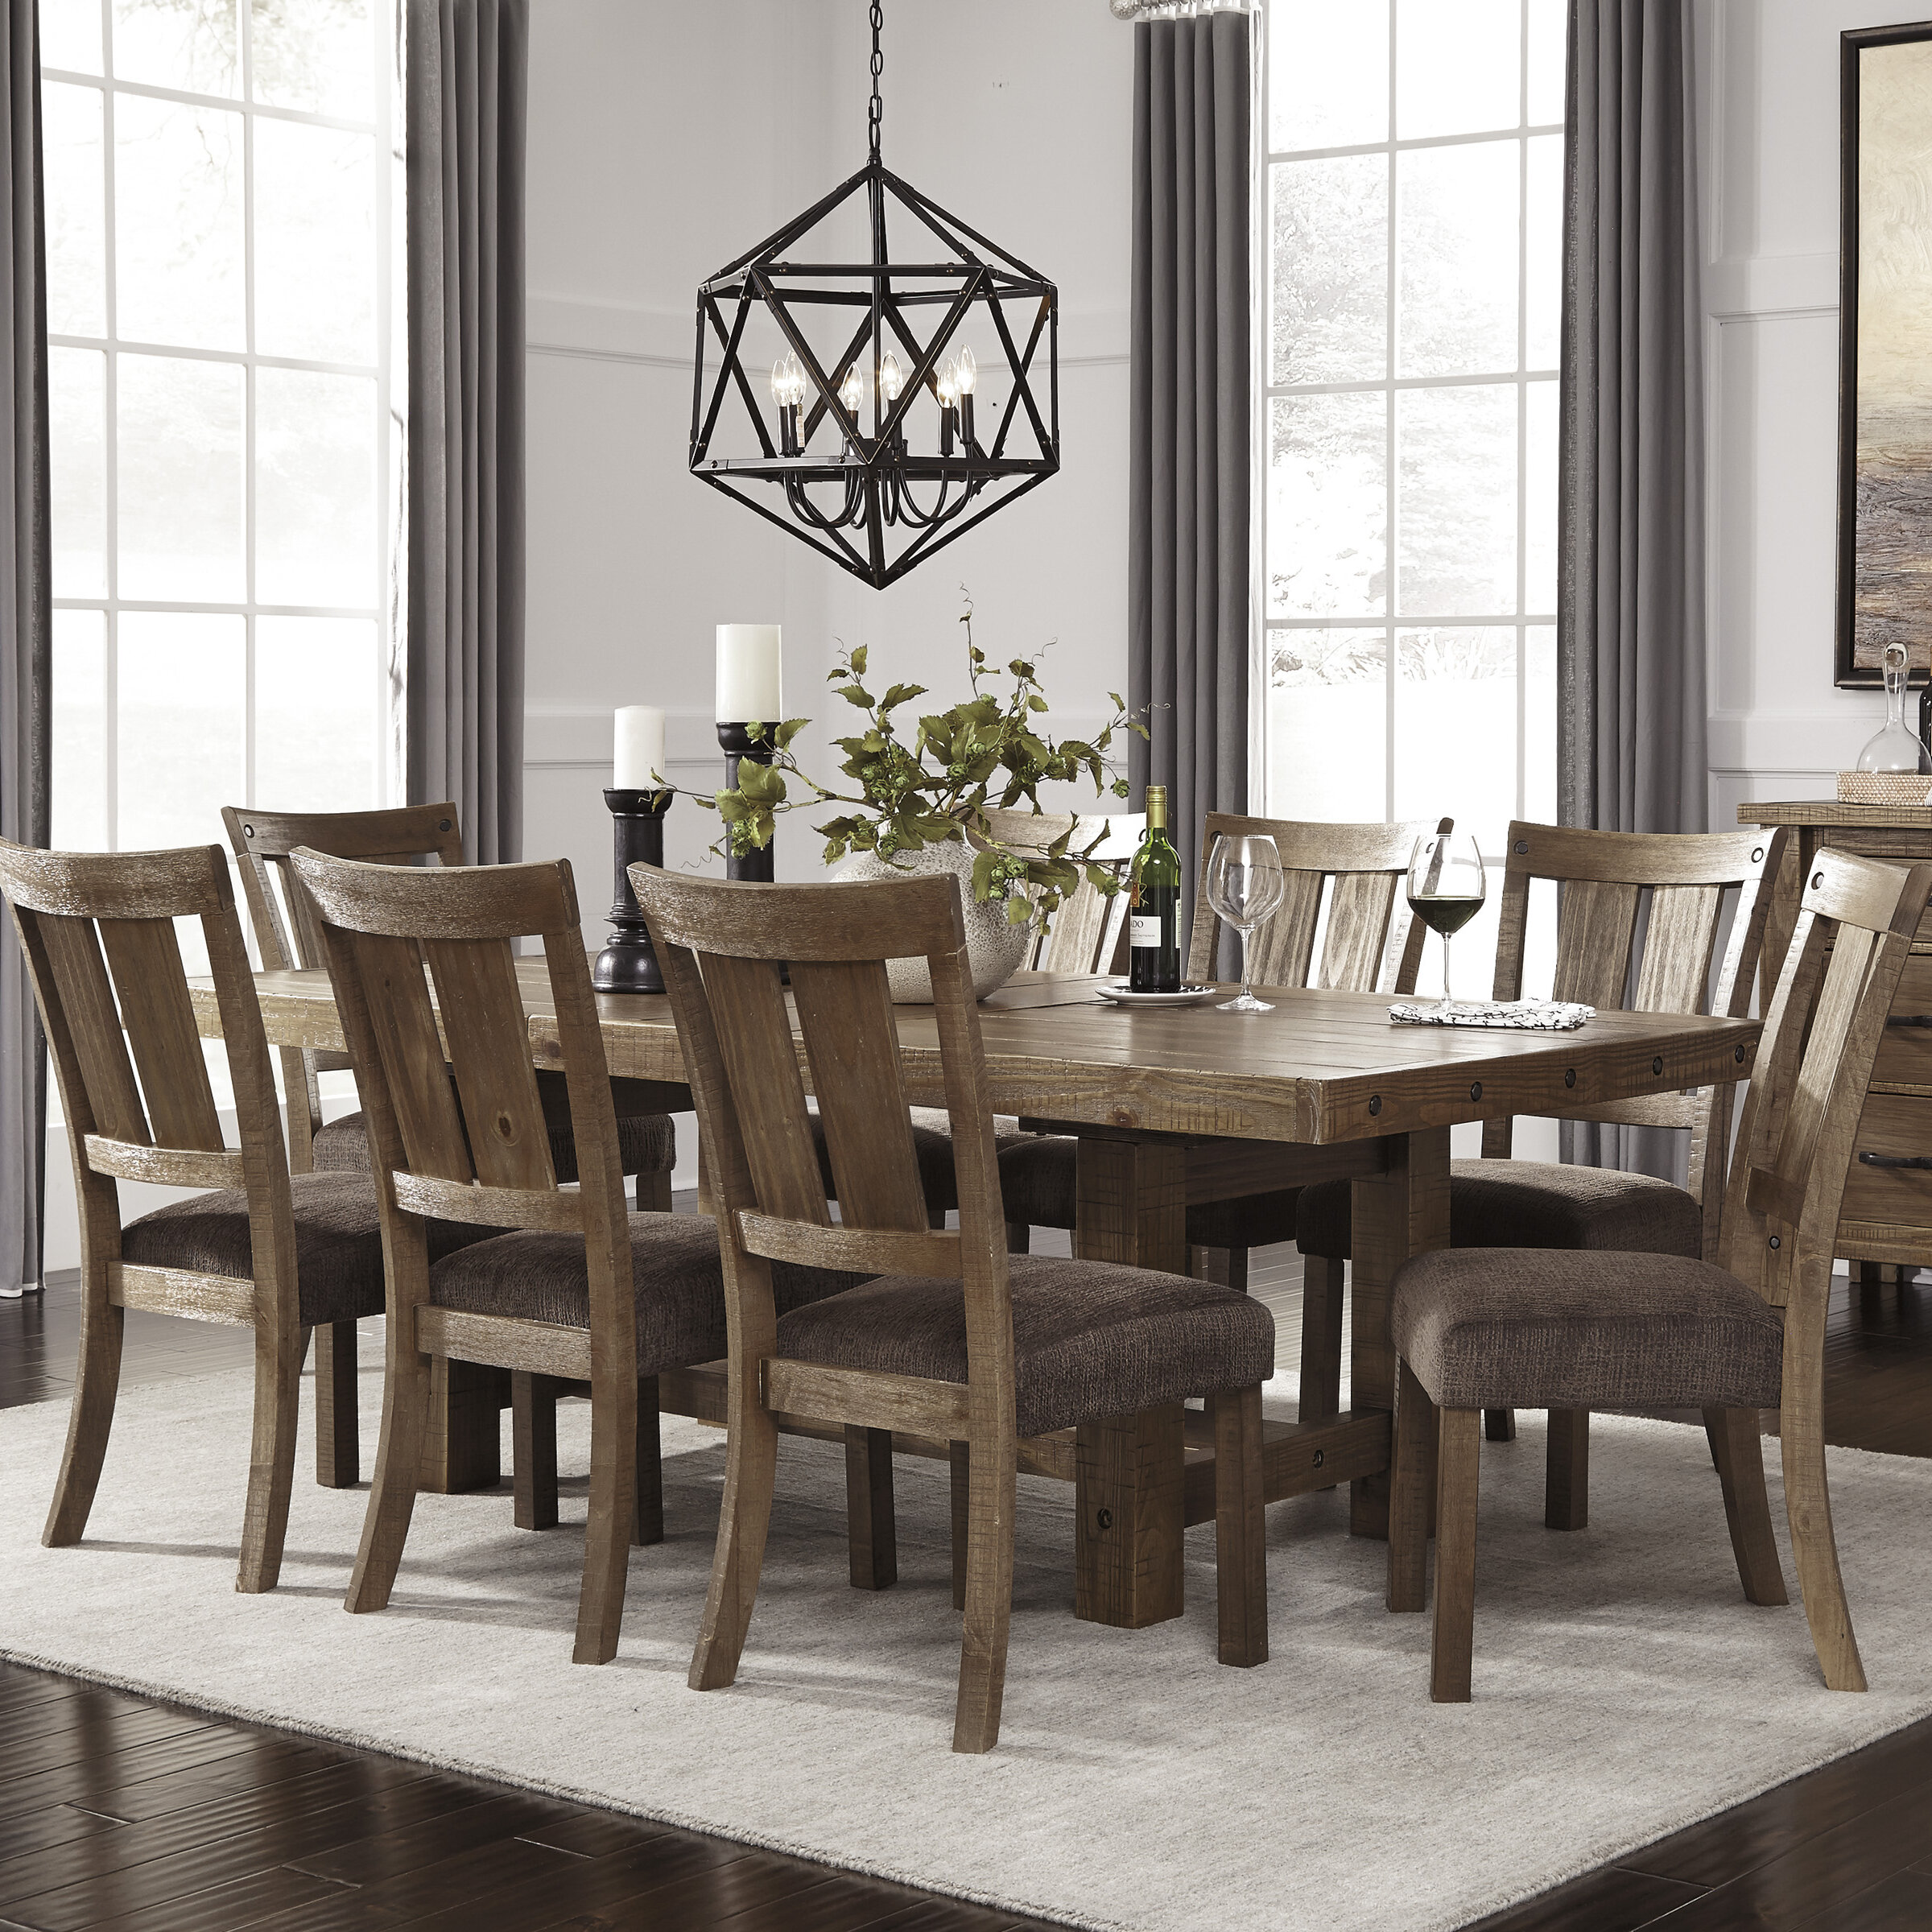 Dinning Set: Loon Peak Etolin 9 Piece Dining Set & Reviews